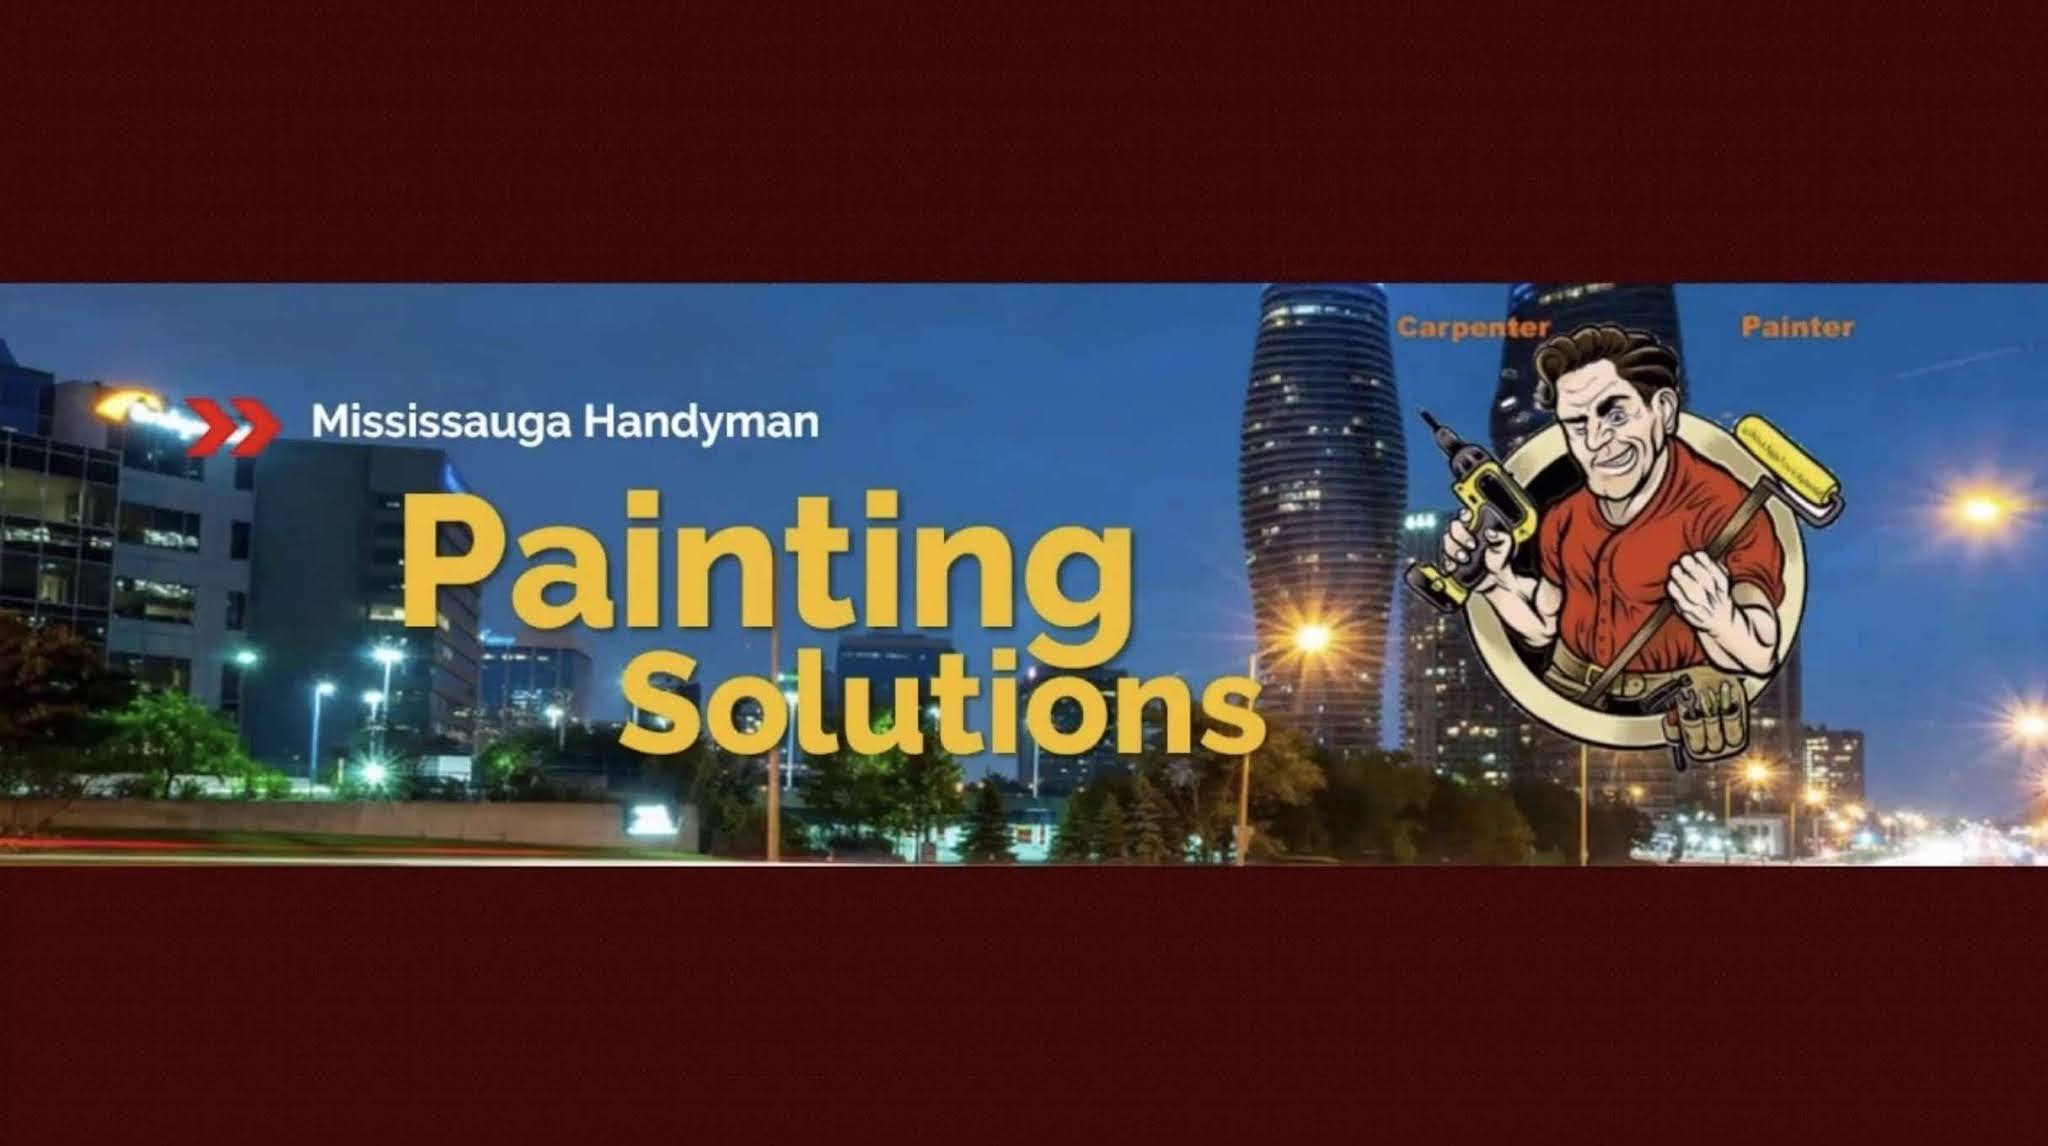 We are a professional painting company